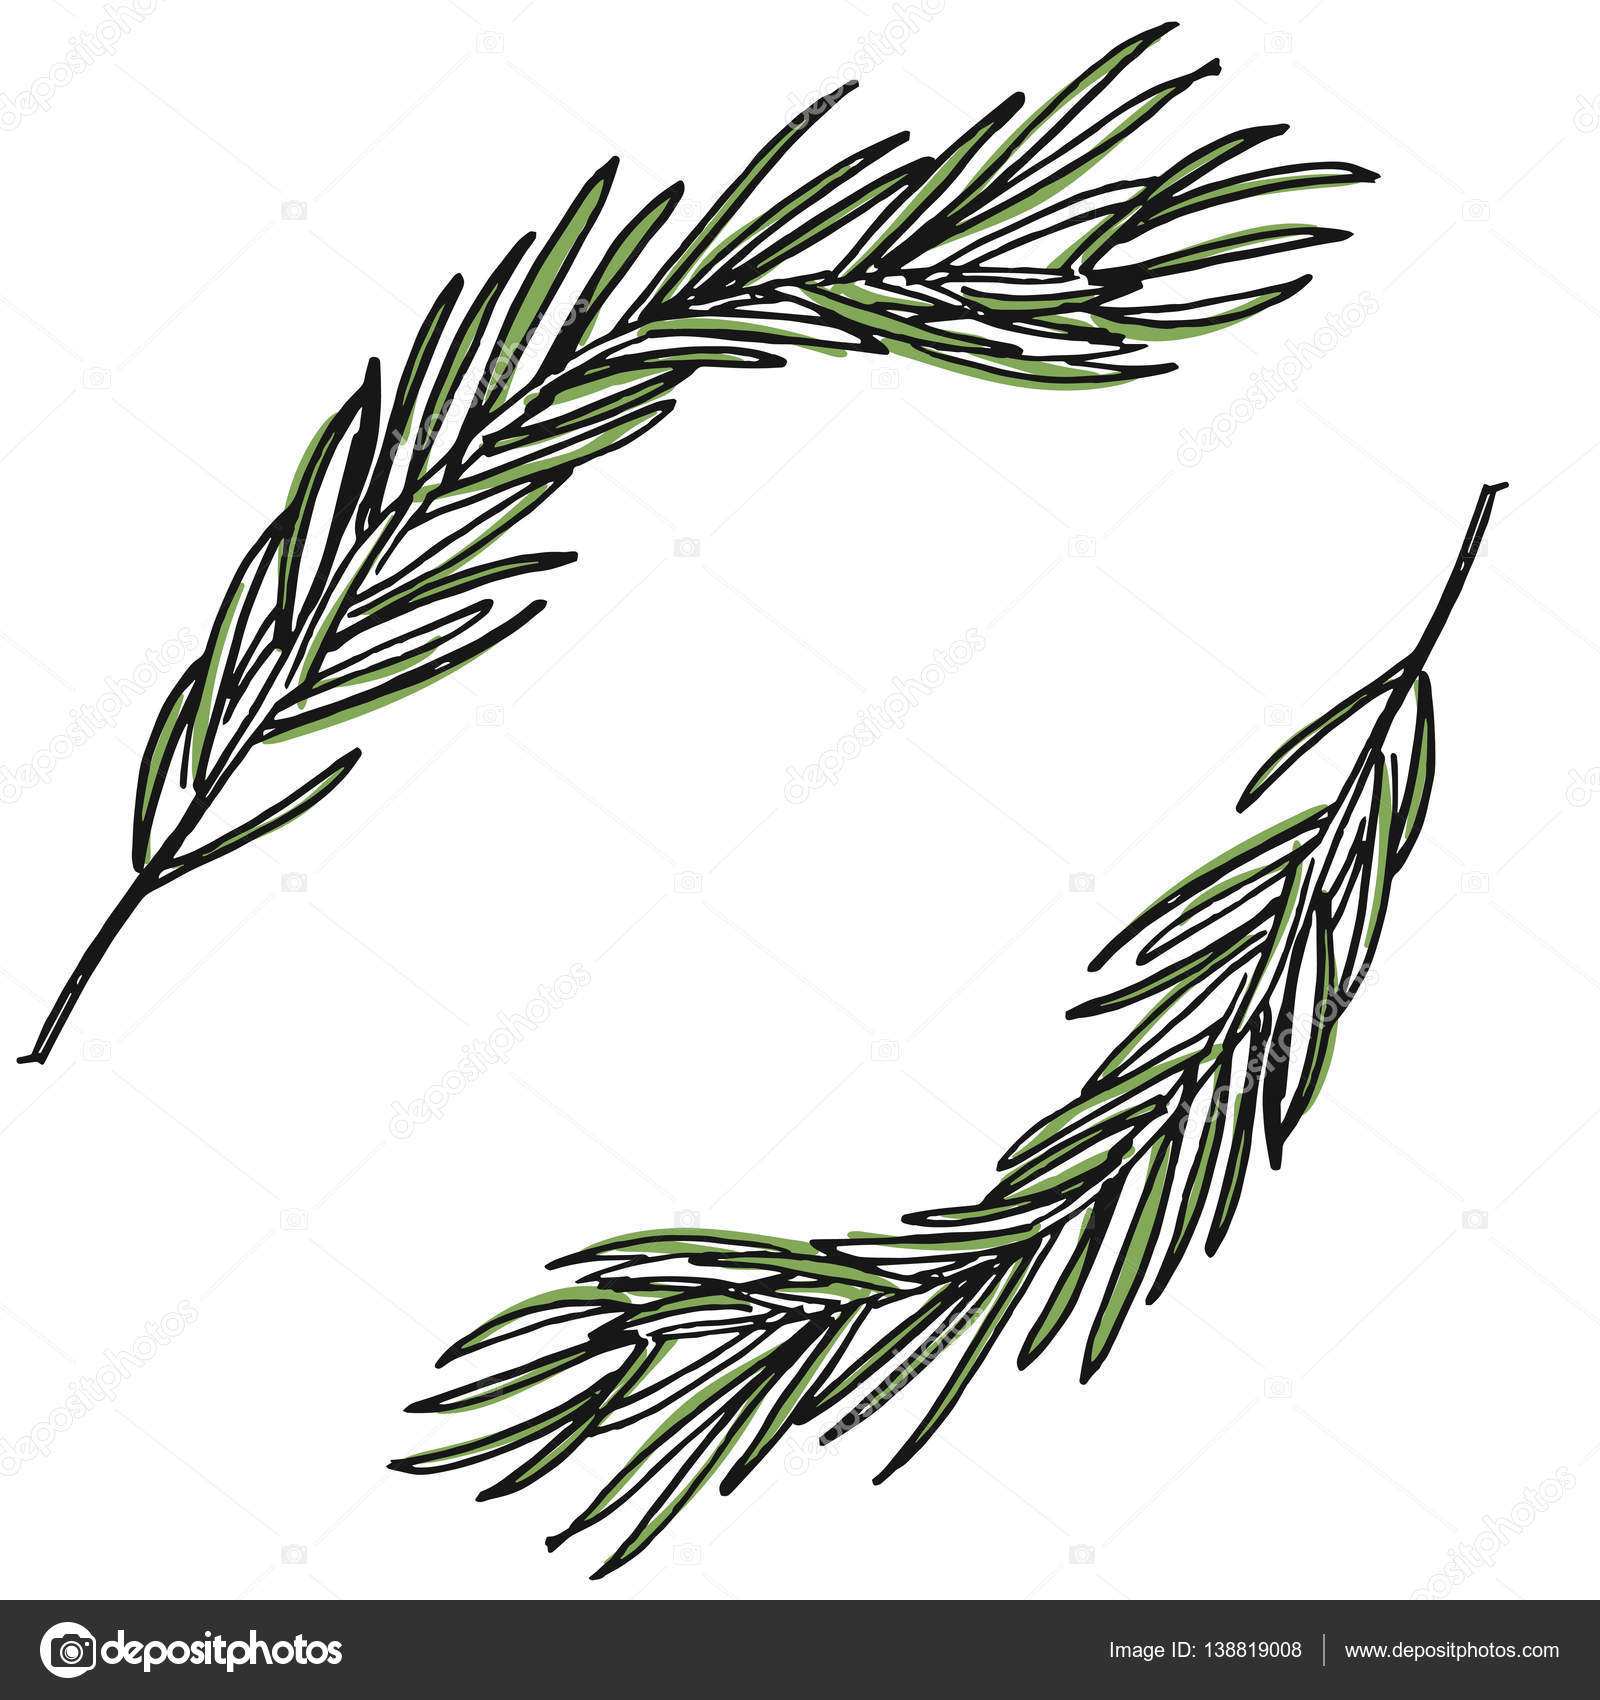 1600x1700 Botanical Illustration With Pine Branches, Pine Tree, Hand Drawn